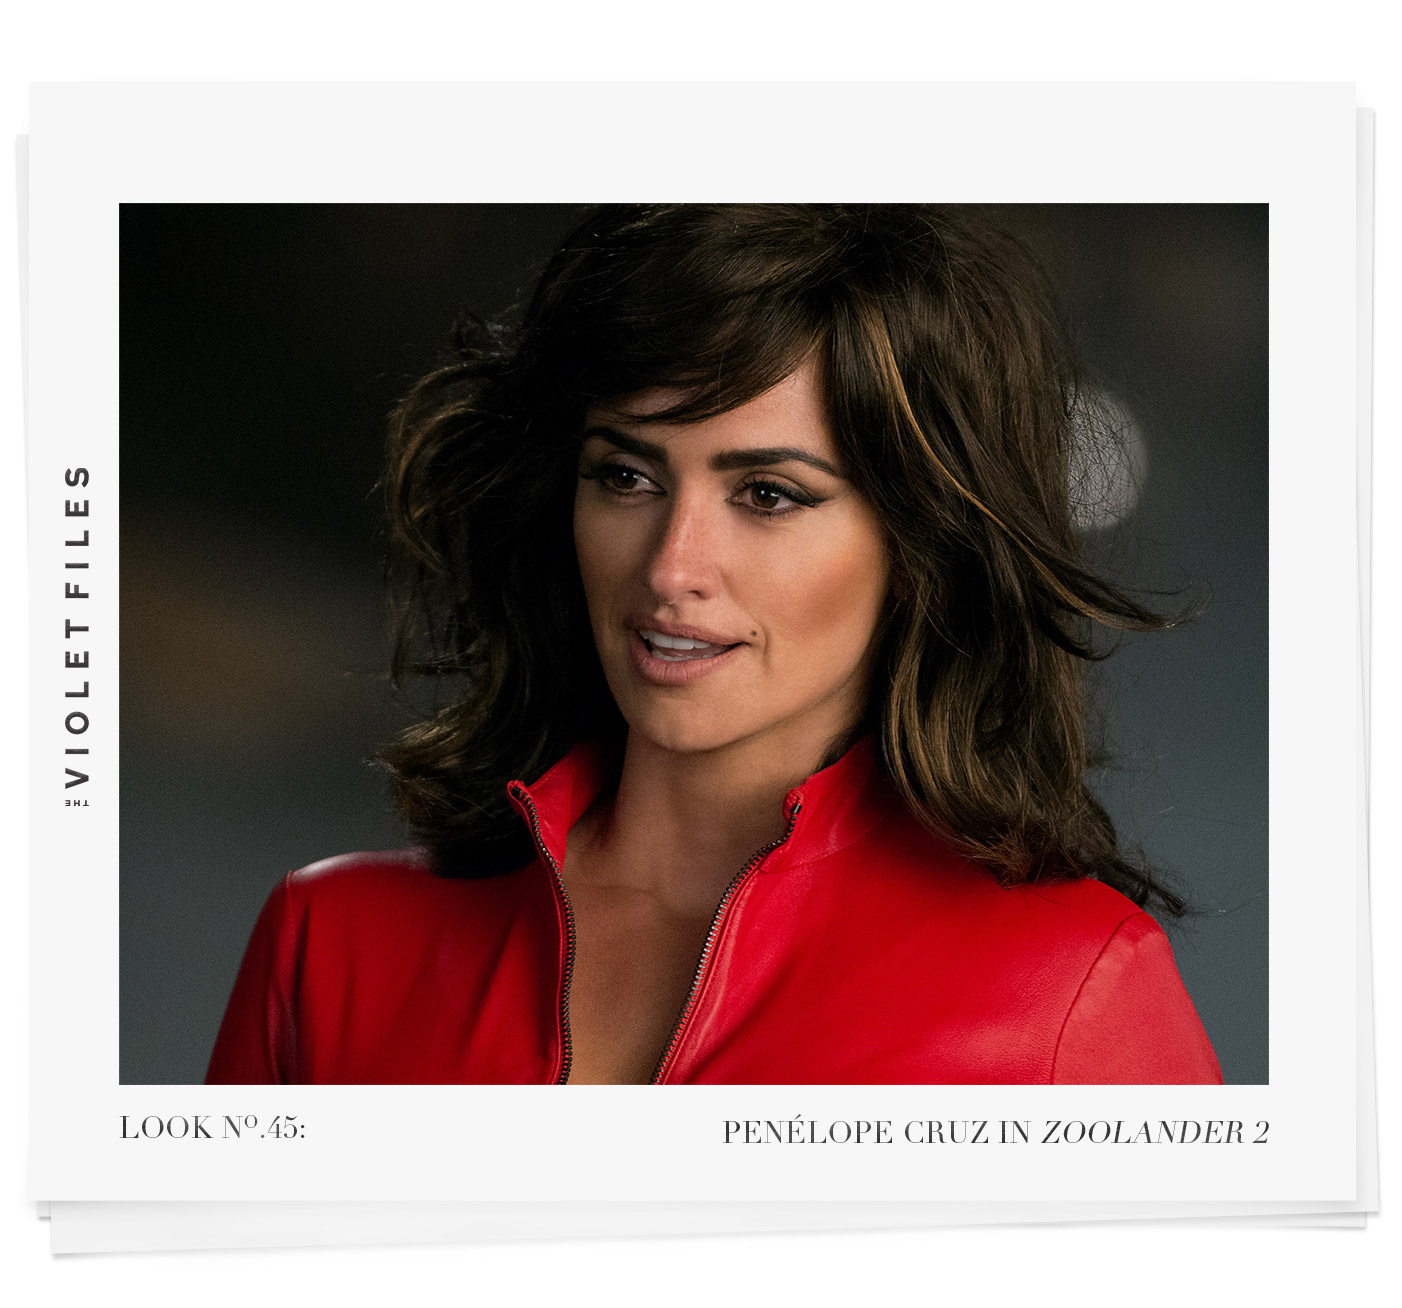 Penelope Cruz in Zoolander 2 | Pablo Iglesias | The Violet Files | @violetgrey